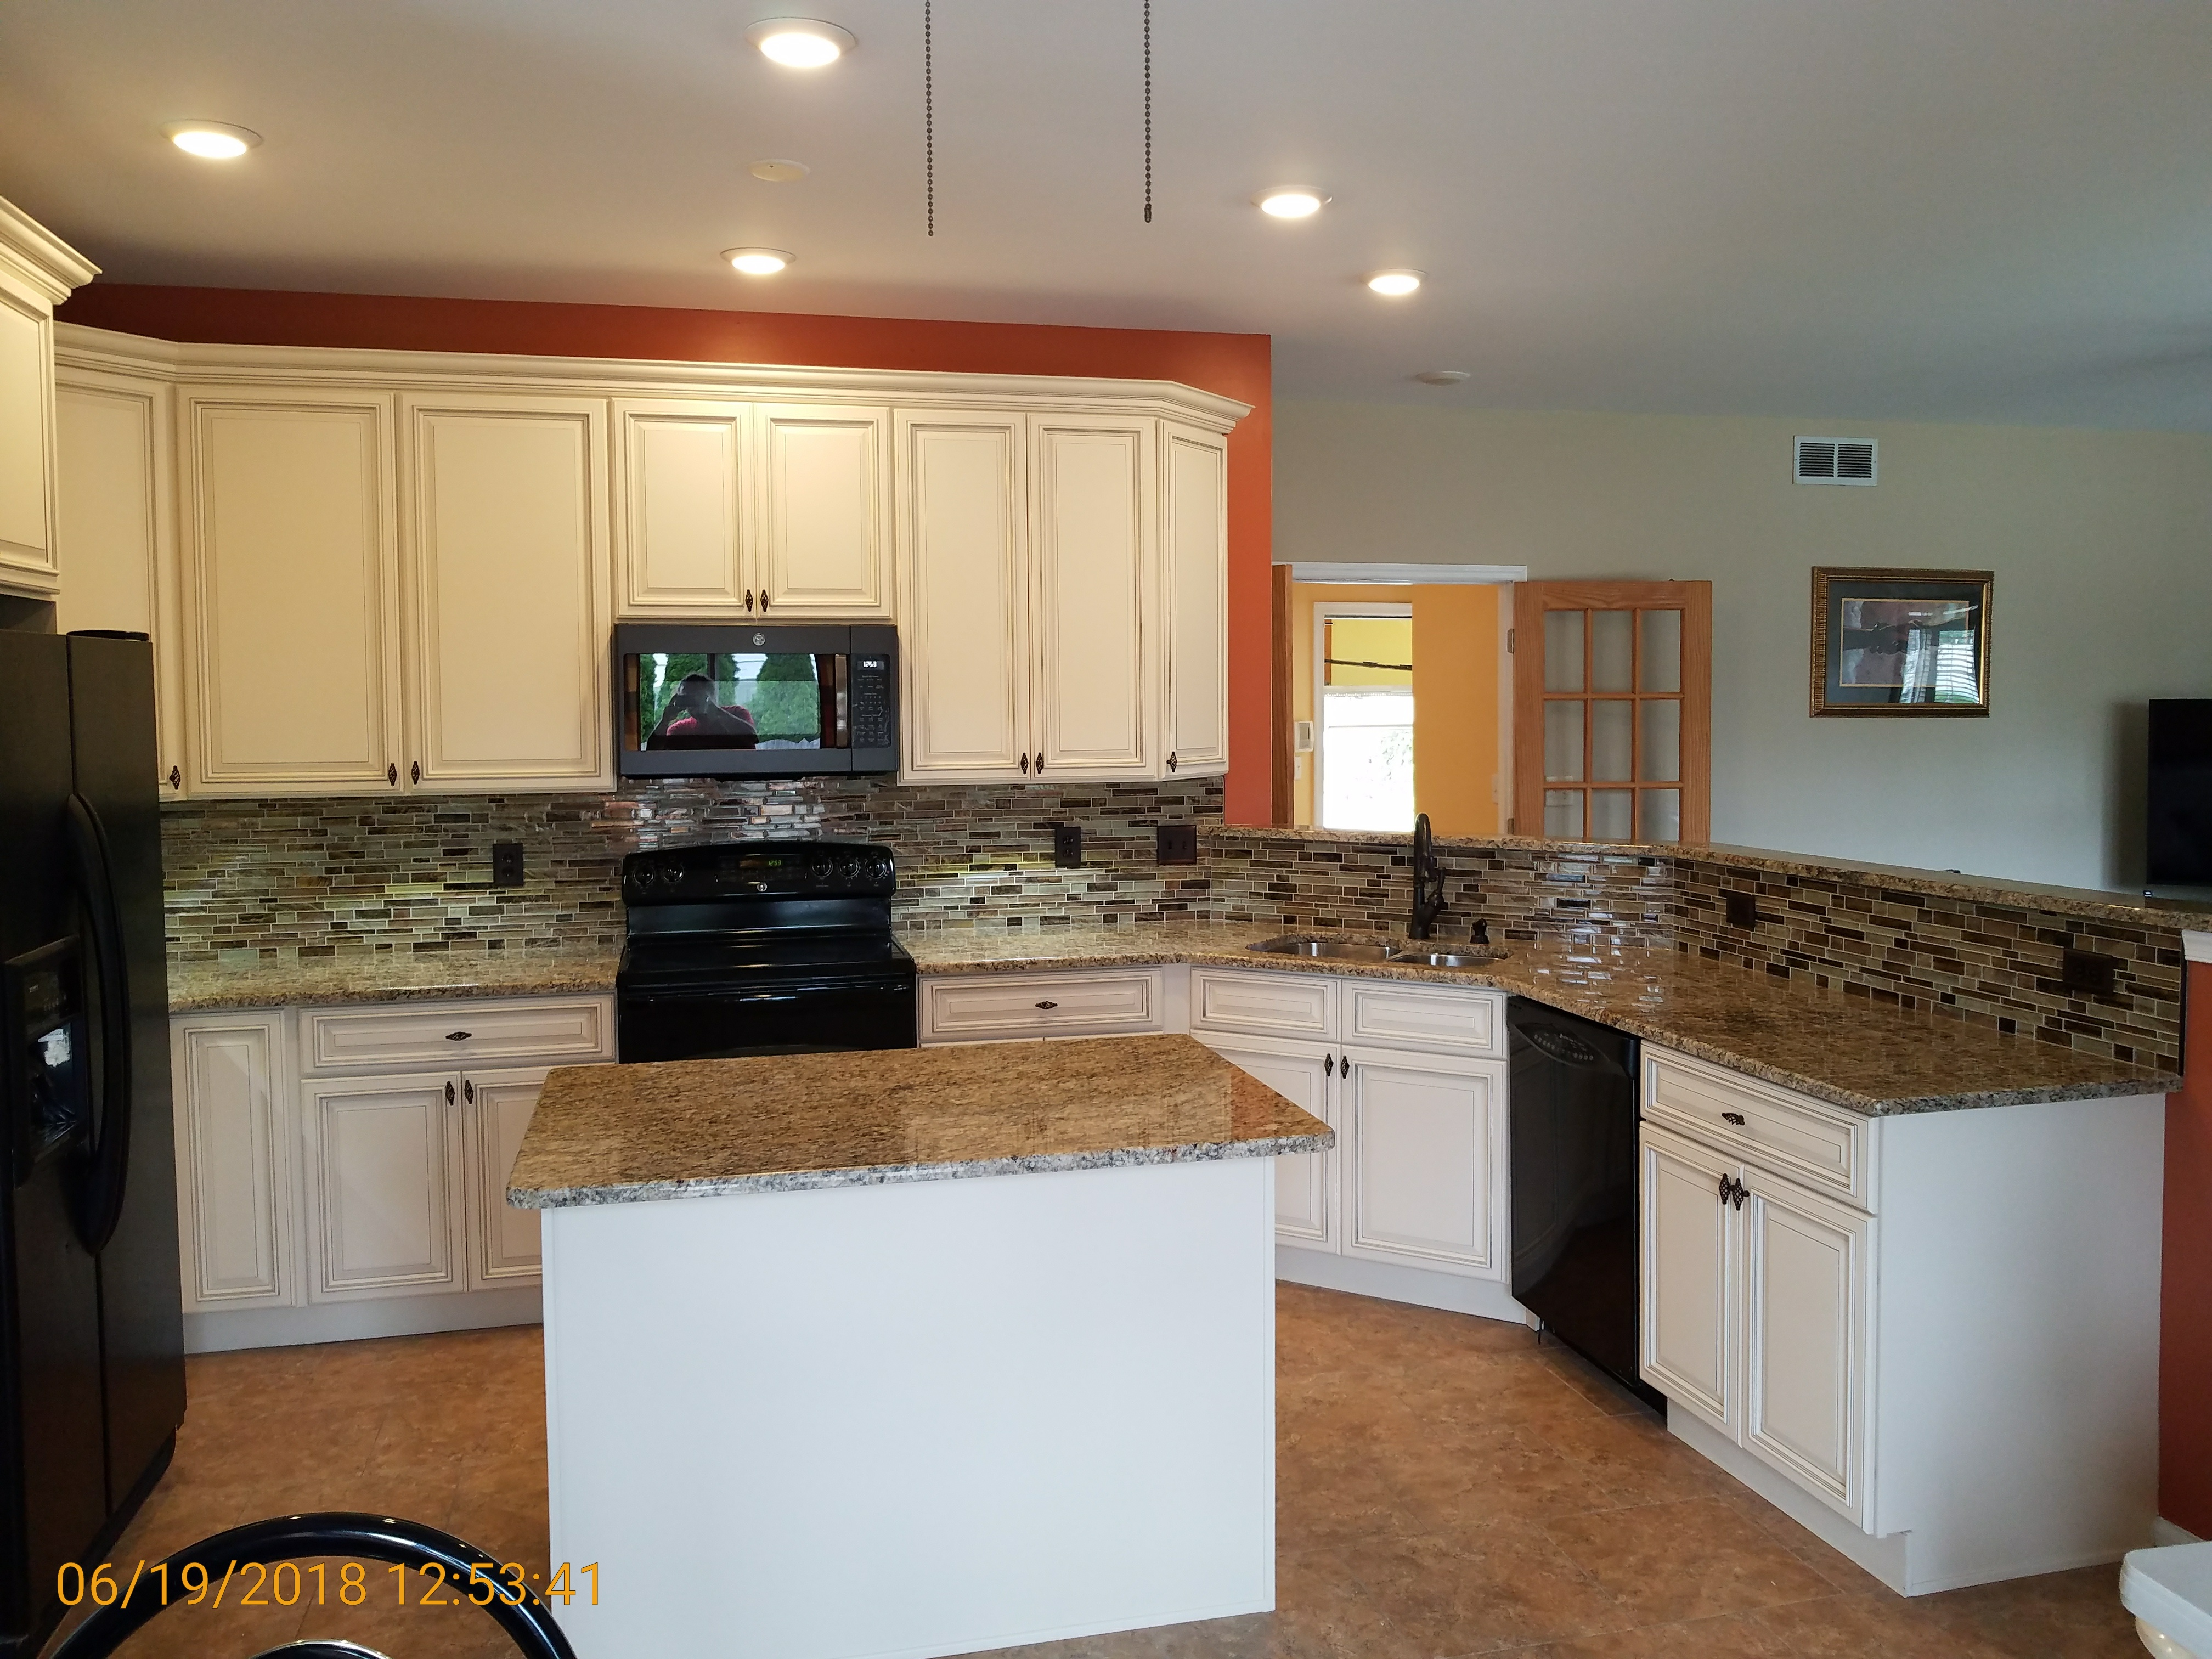 South Jersey Custom Painting and Home Remodeling